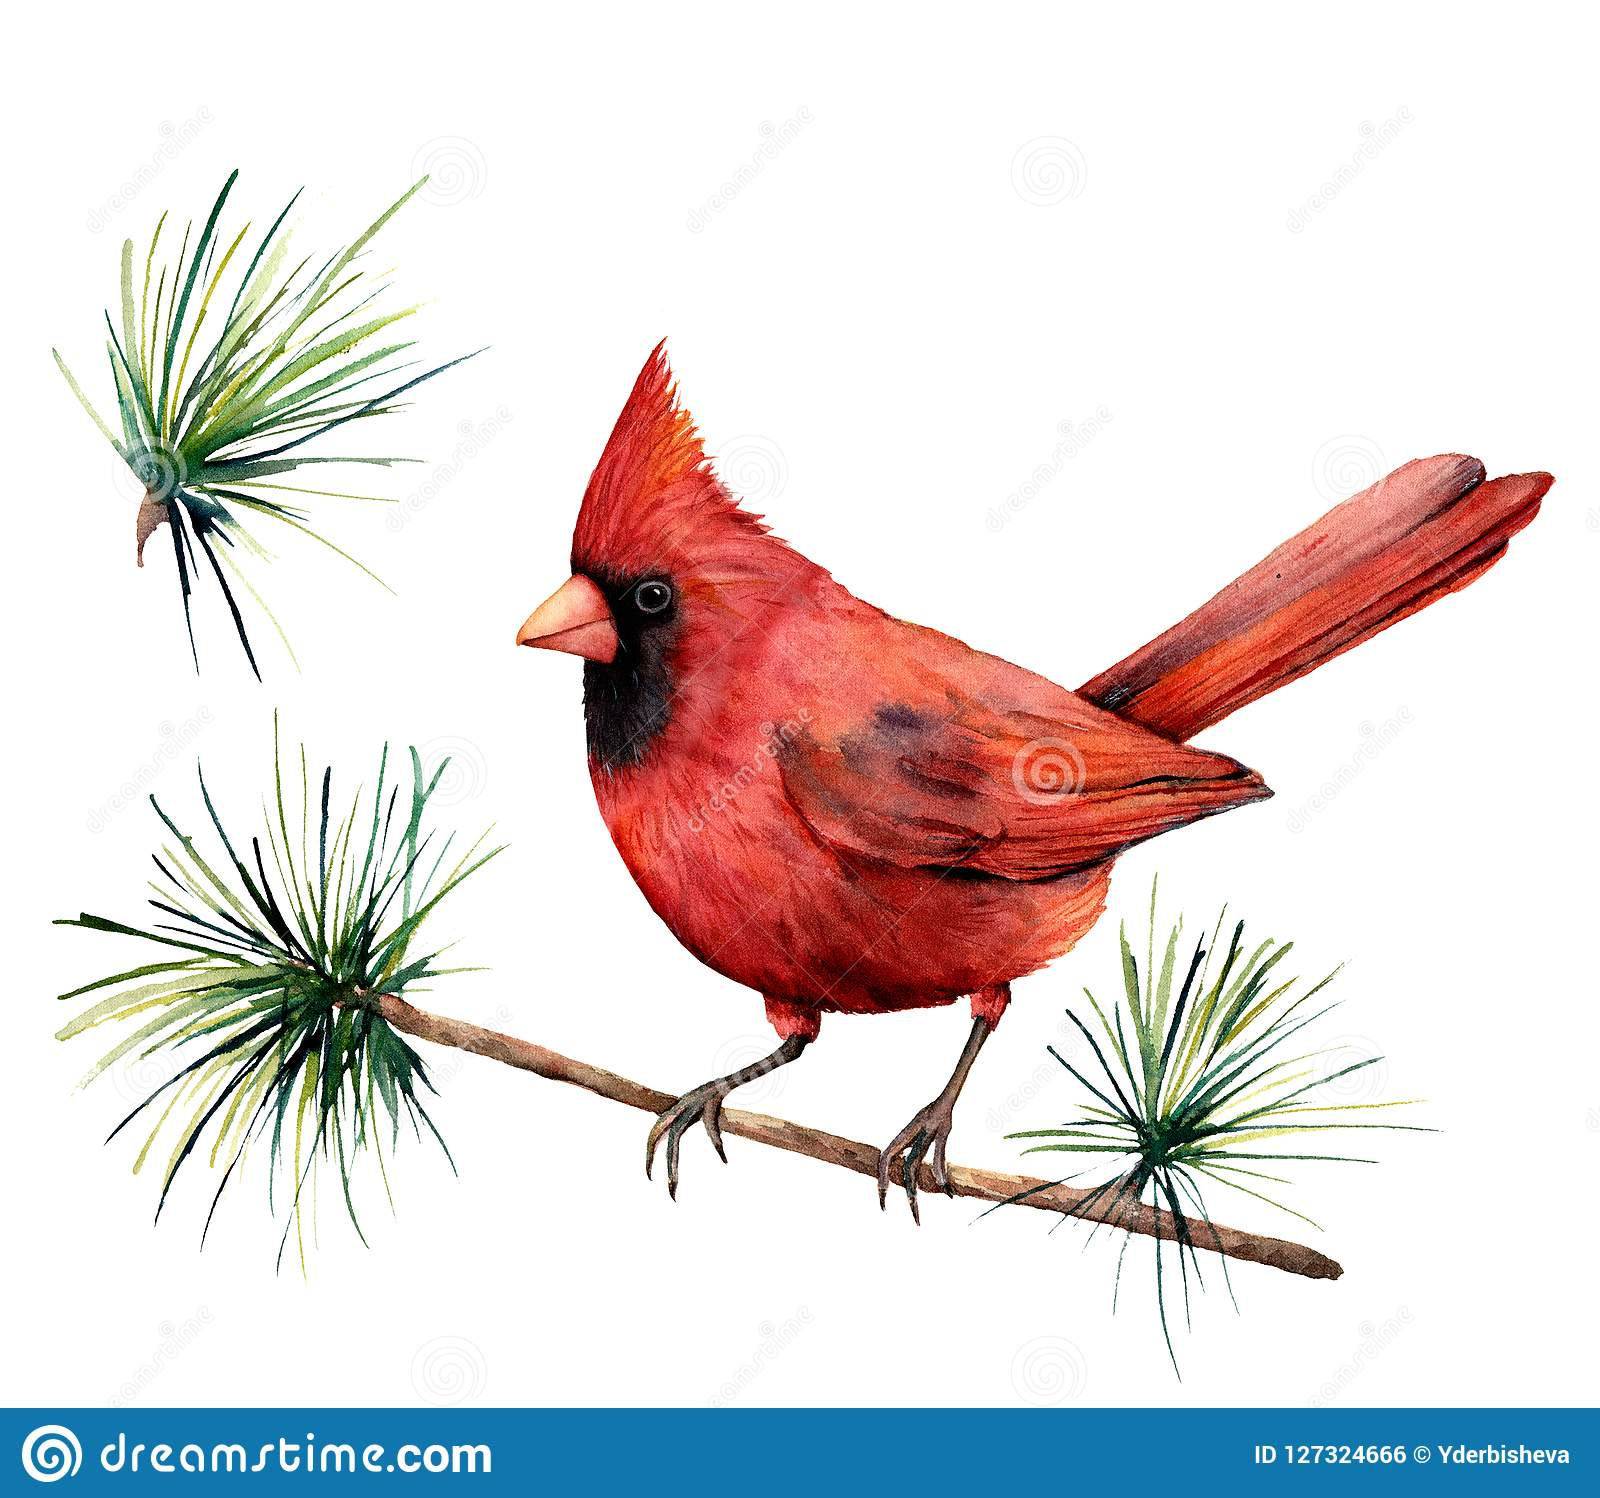 Watercolor bird red cardinal. Hand painted greeting card illustration with bird and branch isolated on white background